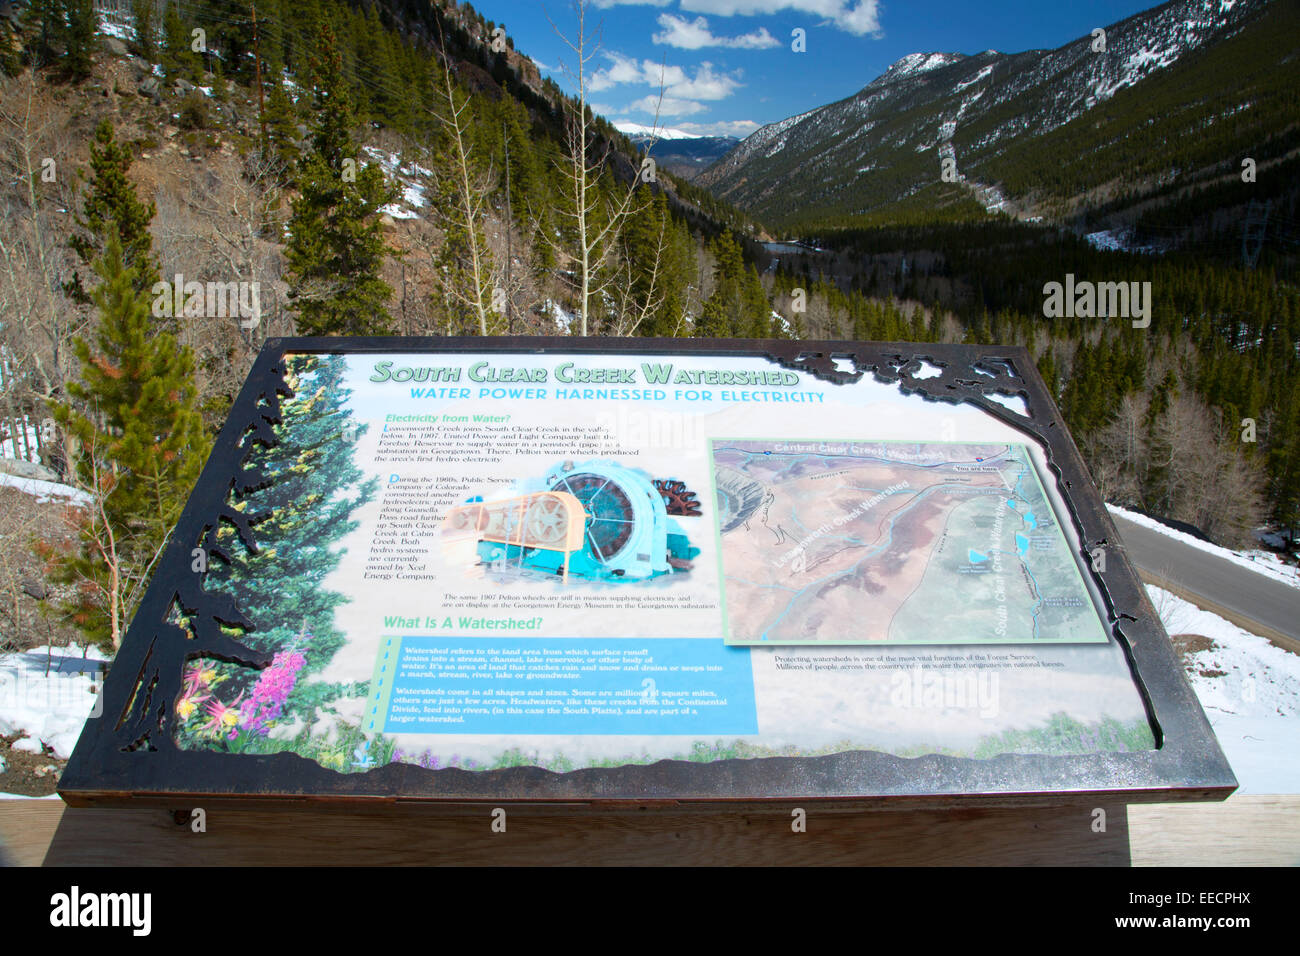 South Clear Creek Watershed interpretive board, Arapaho National Forest, Guanella Pass Road Scenic Byway, Colorado - Stock Image